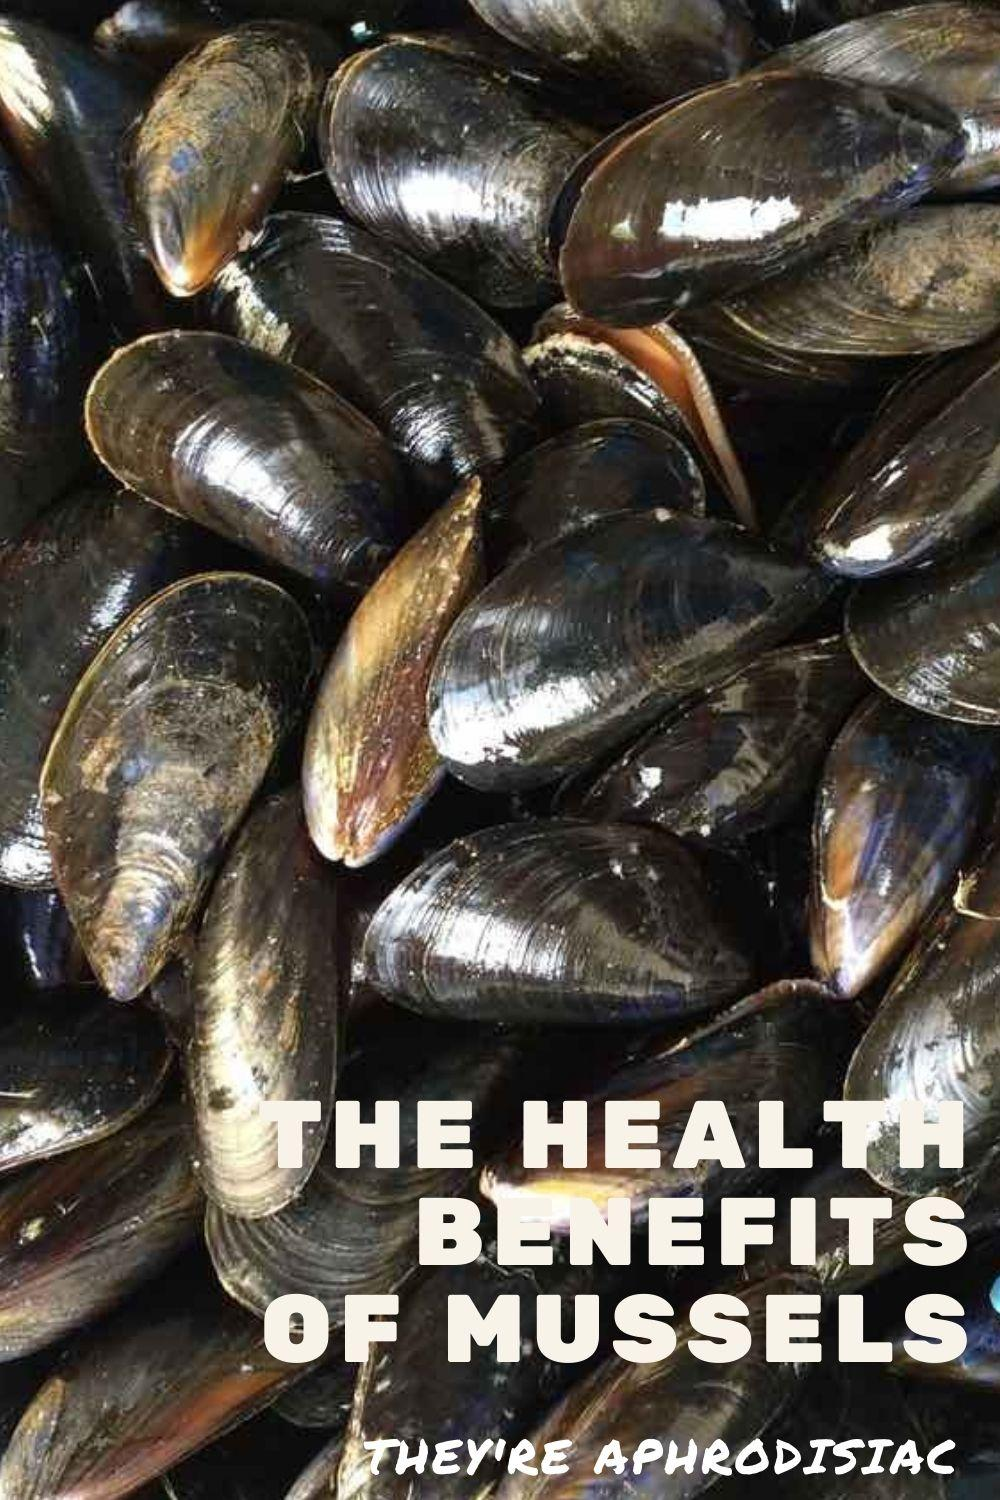 mussels benefits graphic